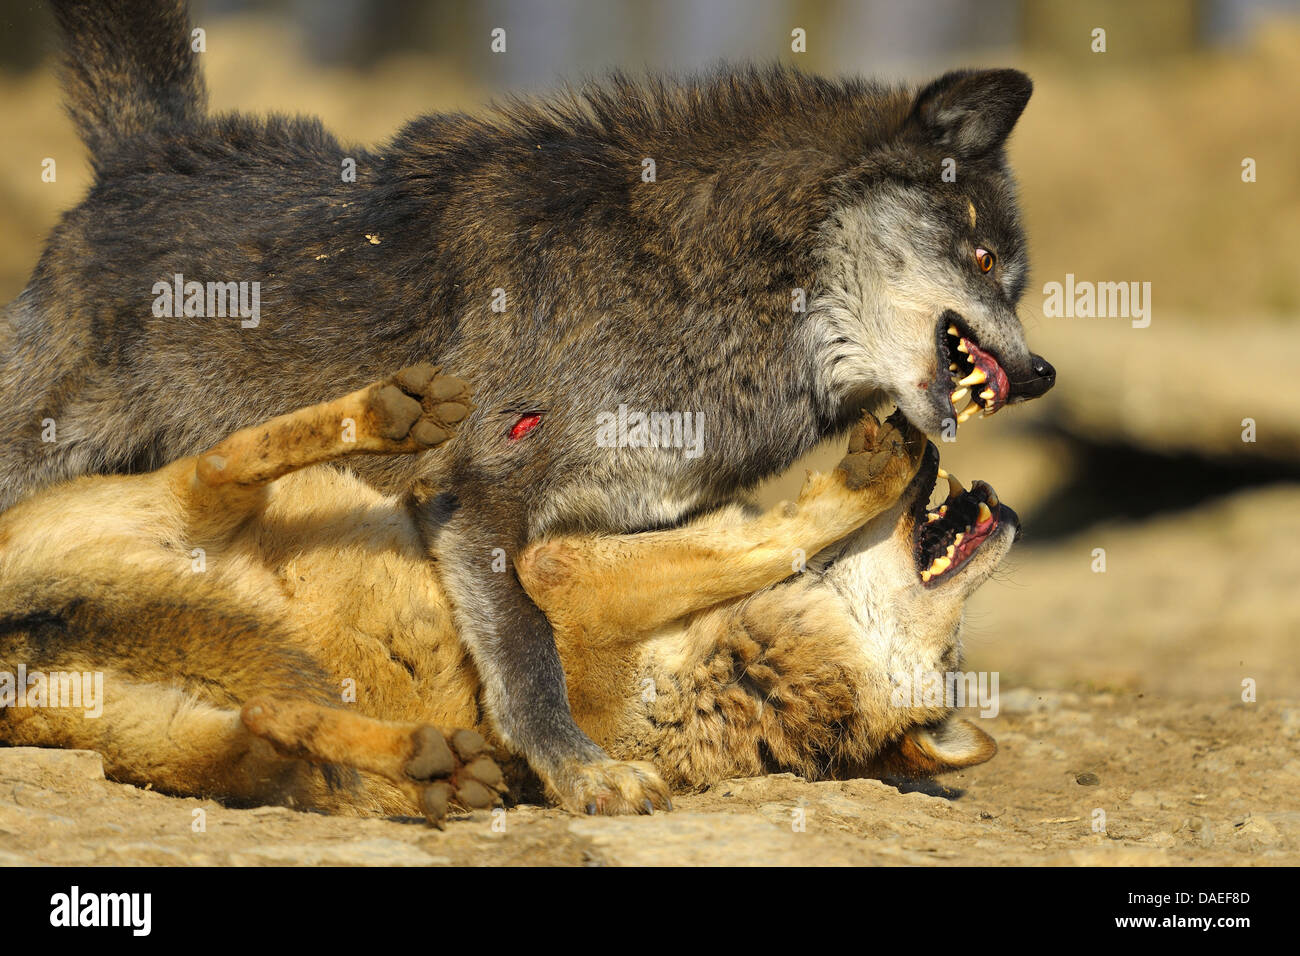 European gray wolf (Canis lupus lupus), Wolves Battle in the Mating Period, Germany - Stock Image